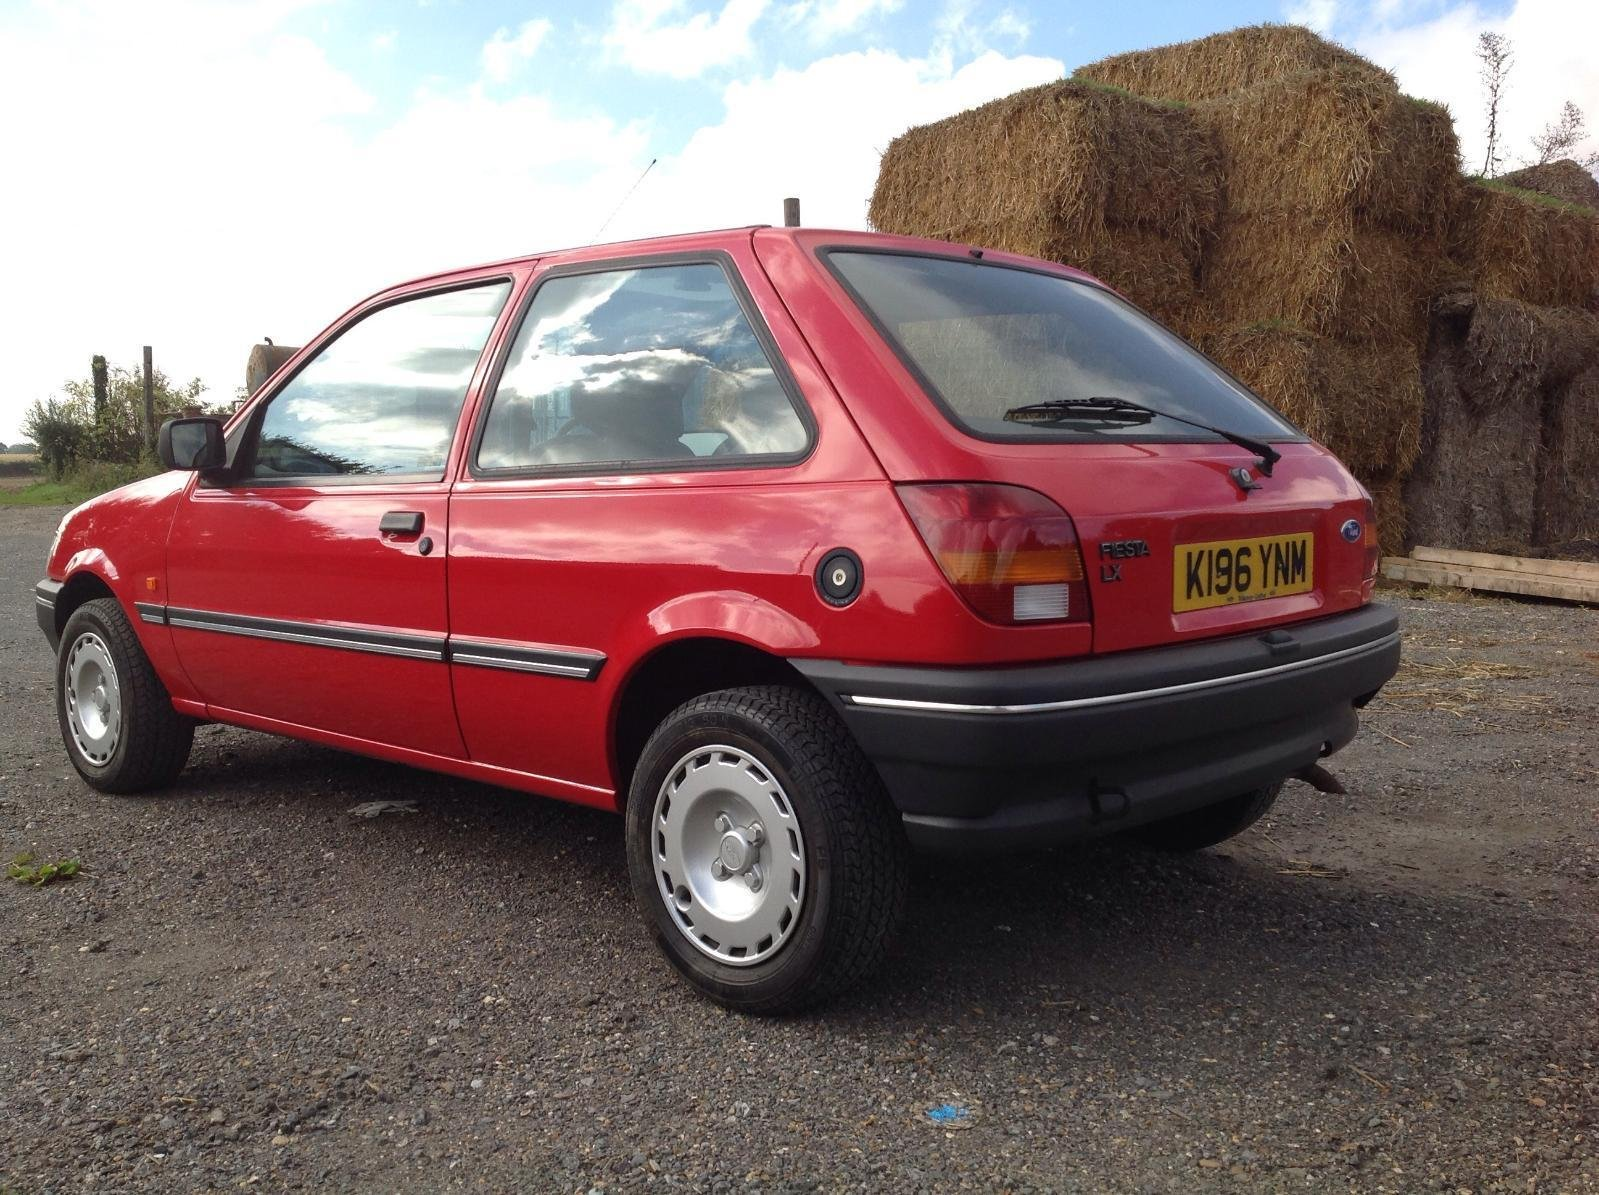 1993 Ford Fiesta 1.1LX For Sale (picture 2 of 6)